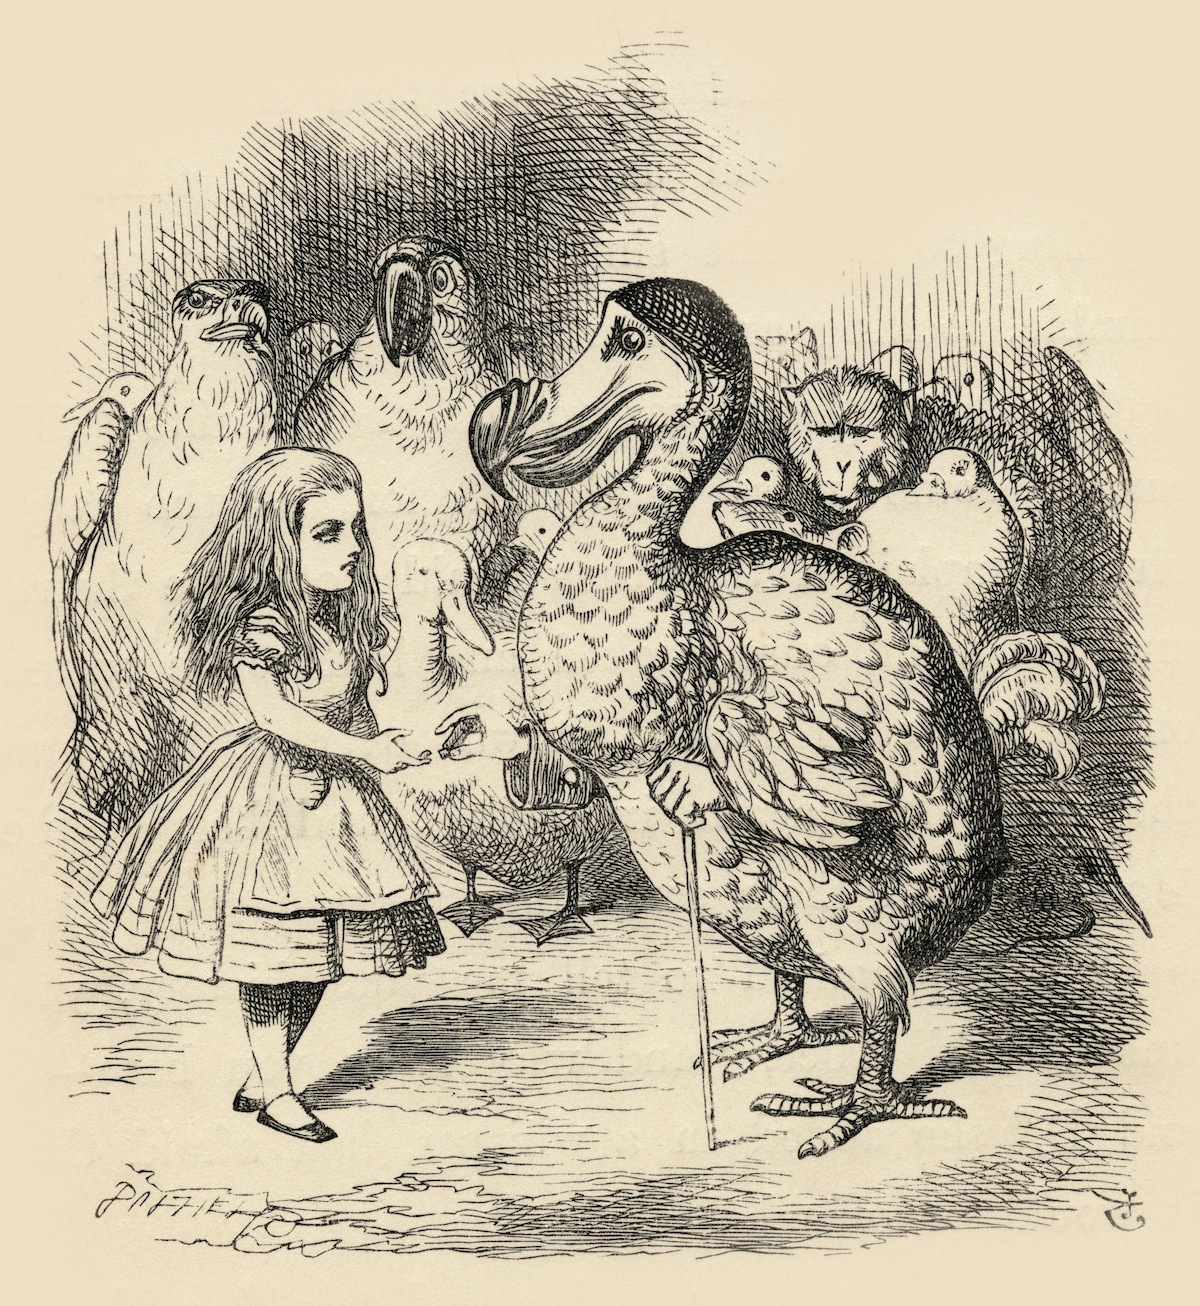 The Dodo solemnly presents Alice with a thimble Illustration by John Tenniel from the book Alices's Adventures in Wonderland by Lewis Carroll